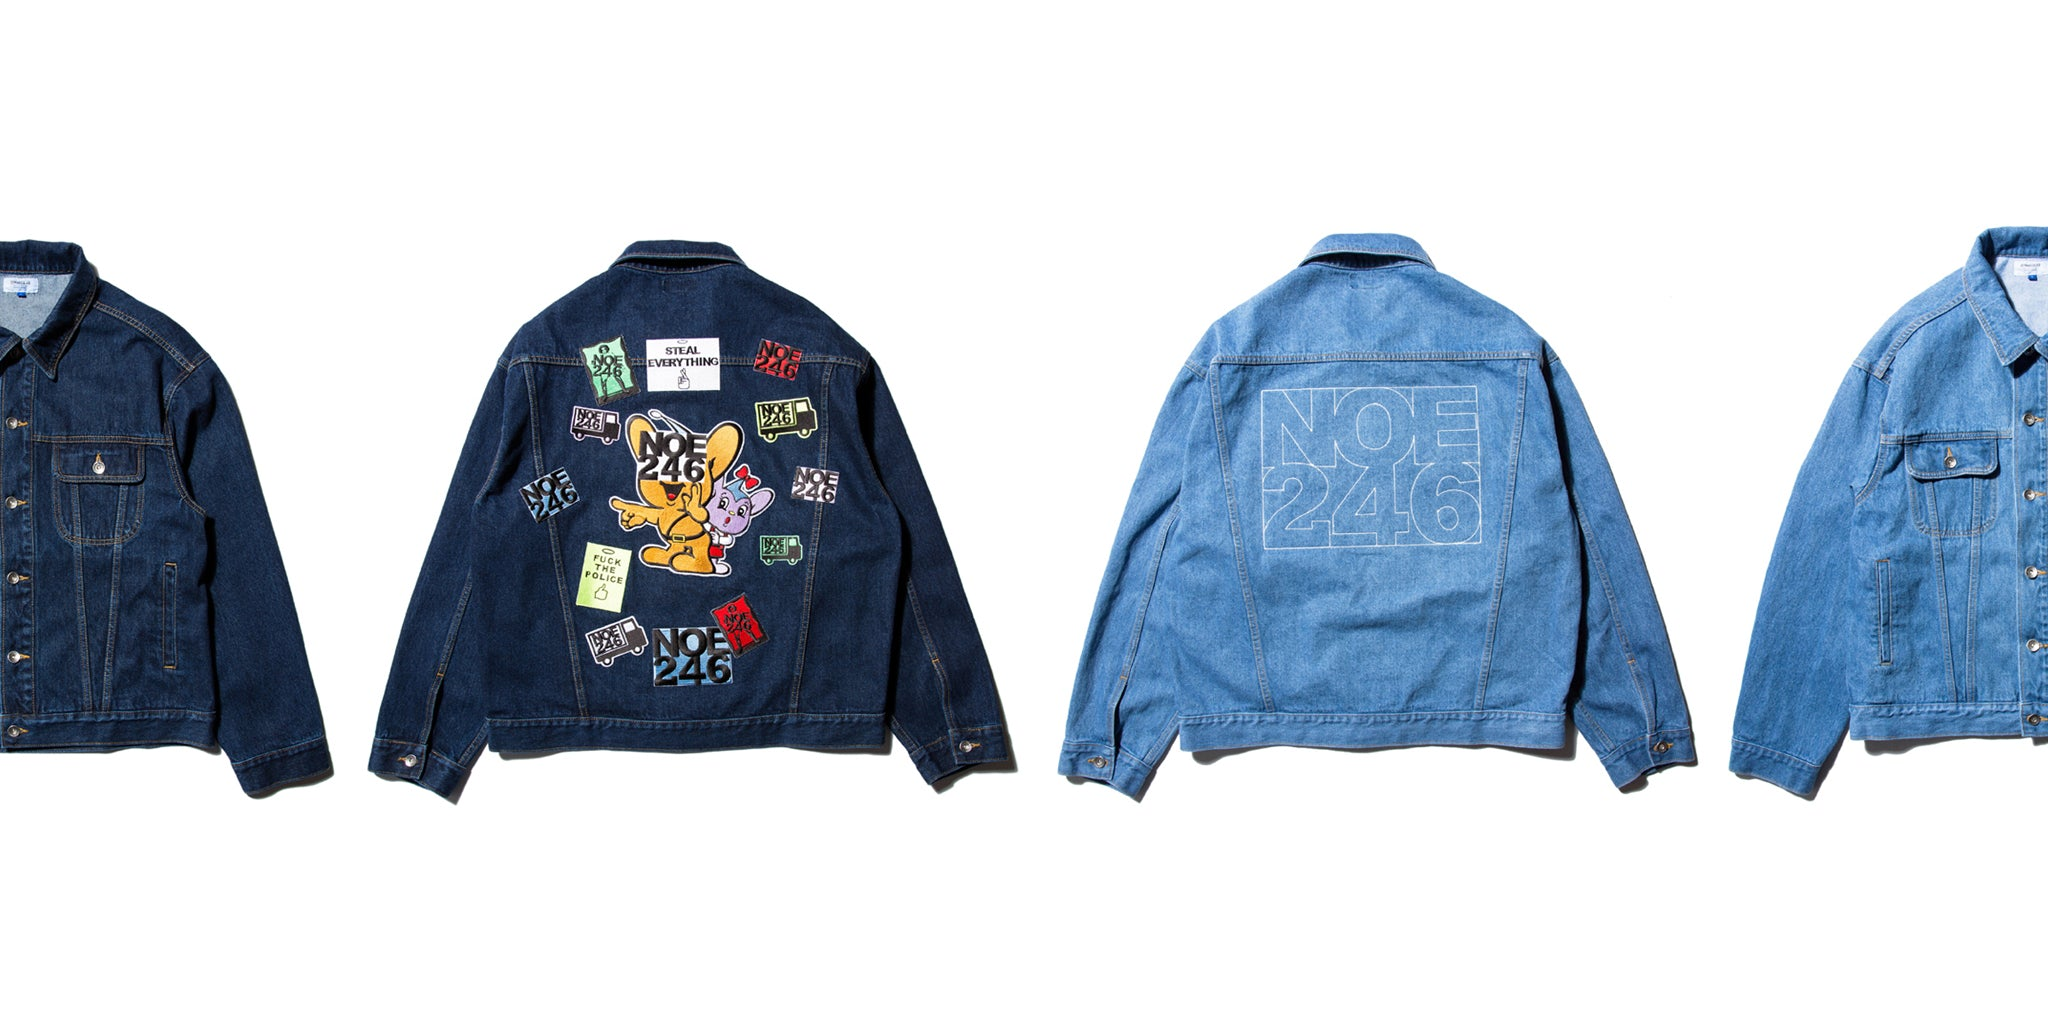 NEW ARRIVAL / DeMarcoLab x NOE246 Capsule Collection